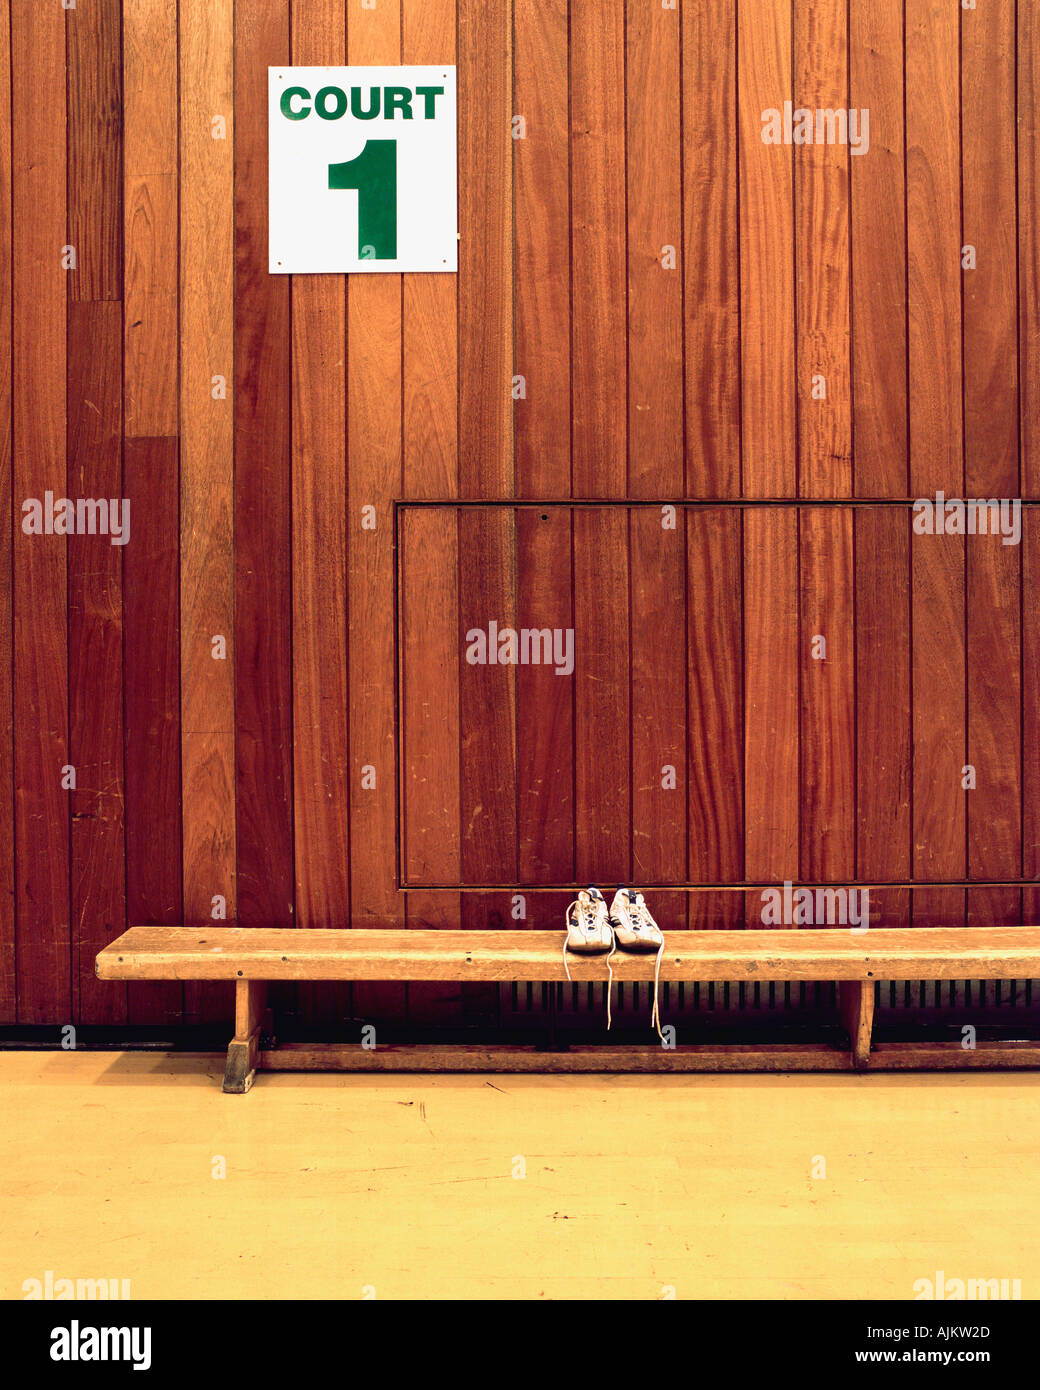 Trainers in sport court - Stock Image